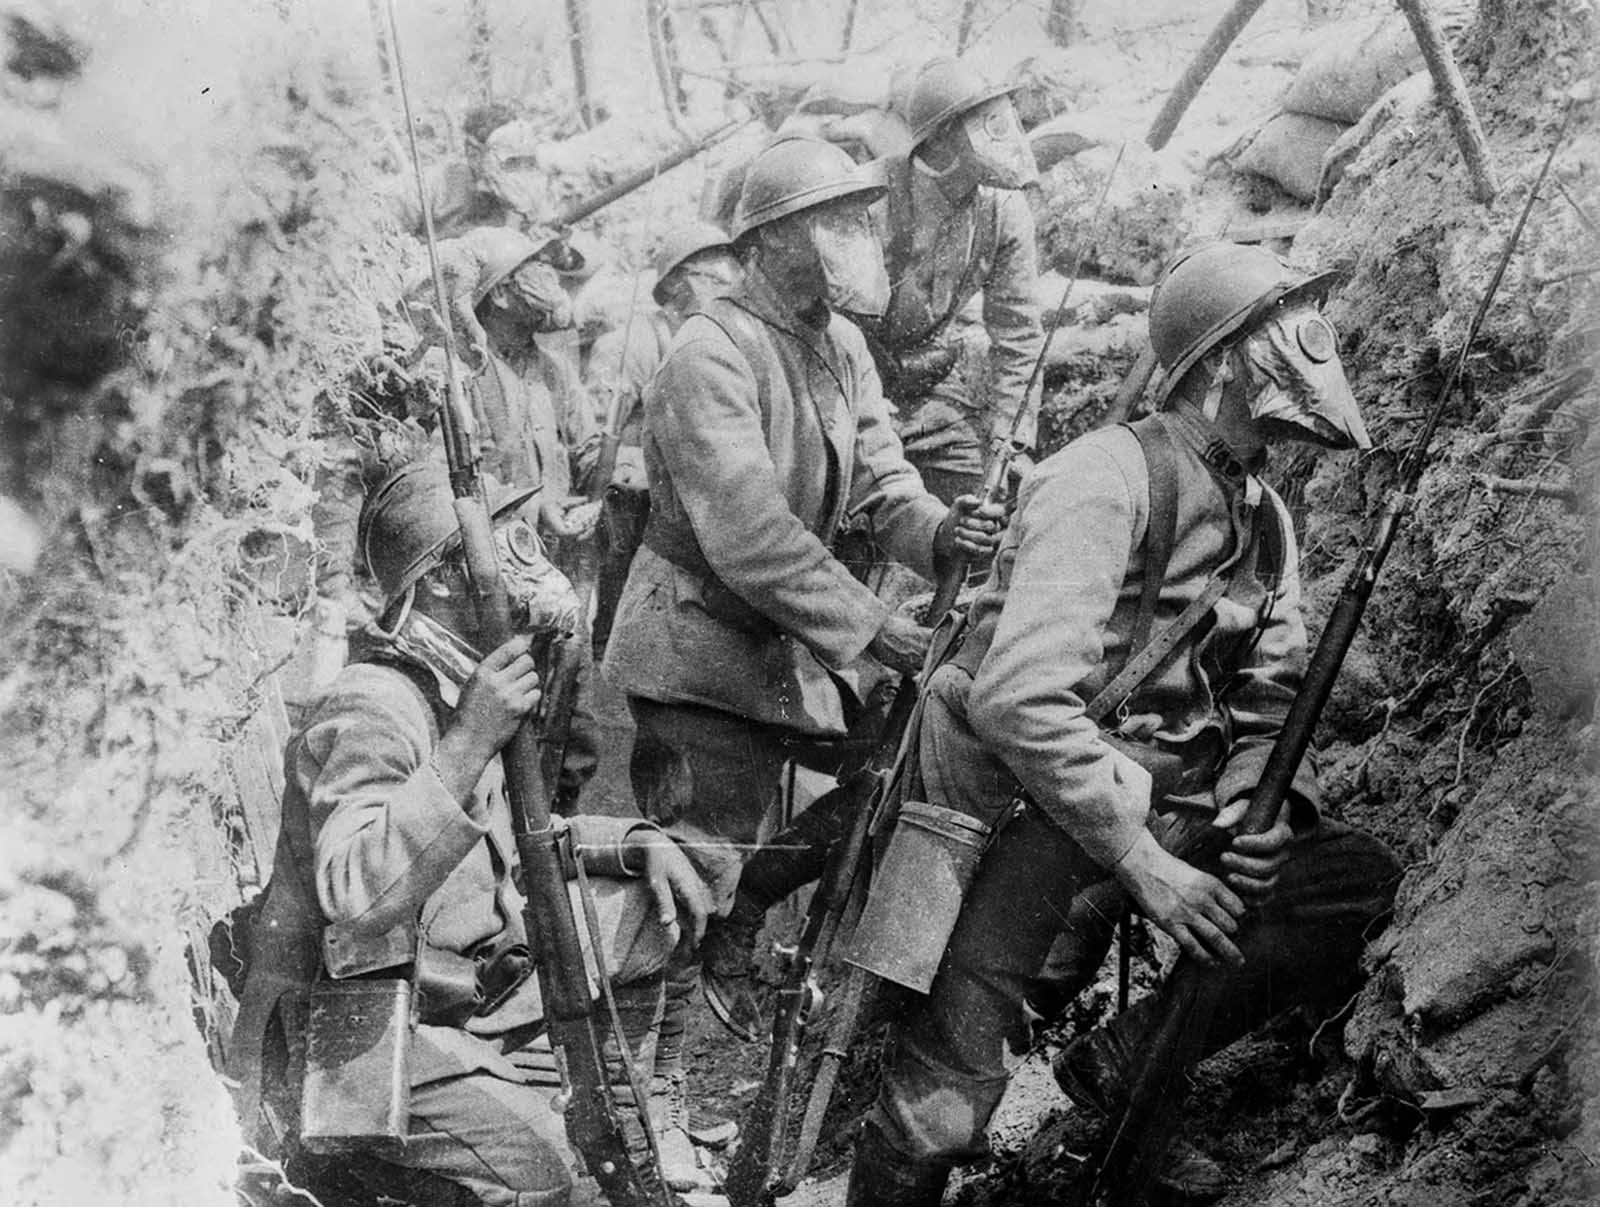 rench soldiers wearing gas masks in a trench, 1917. gas mask technology varied widely during the war, eventually developing into an effective defense, limiting the value of gas attacks in later years.